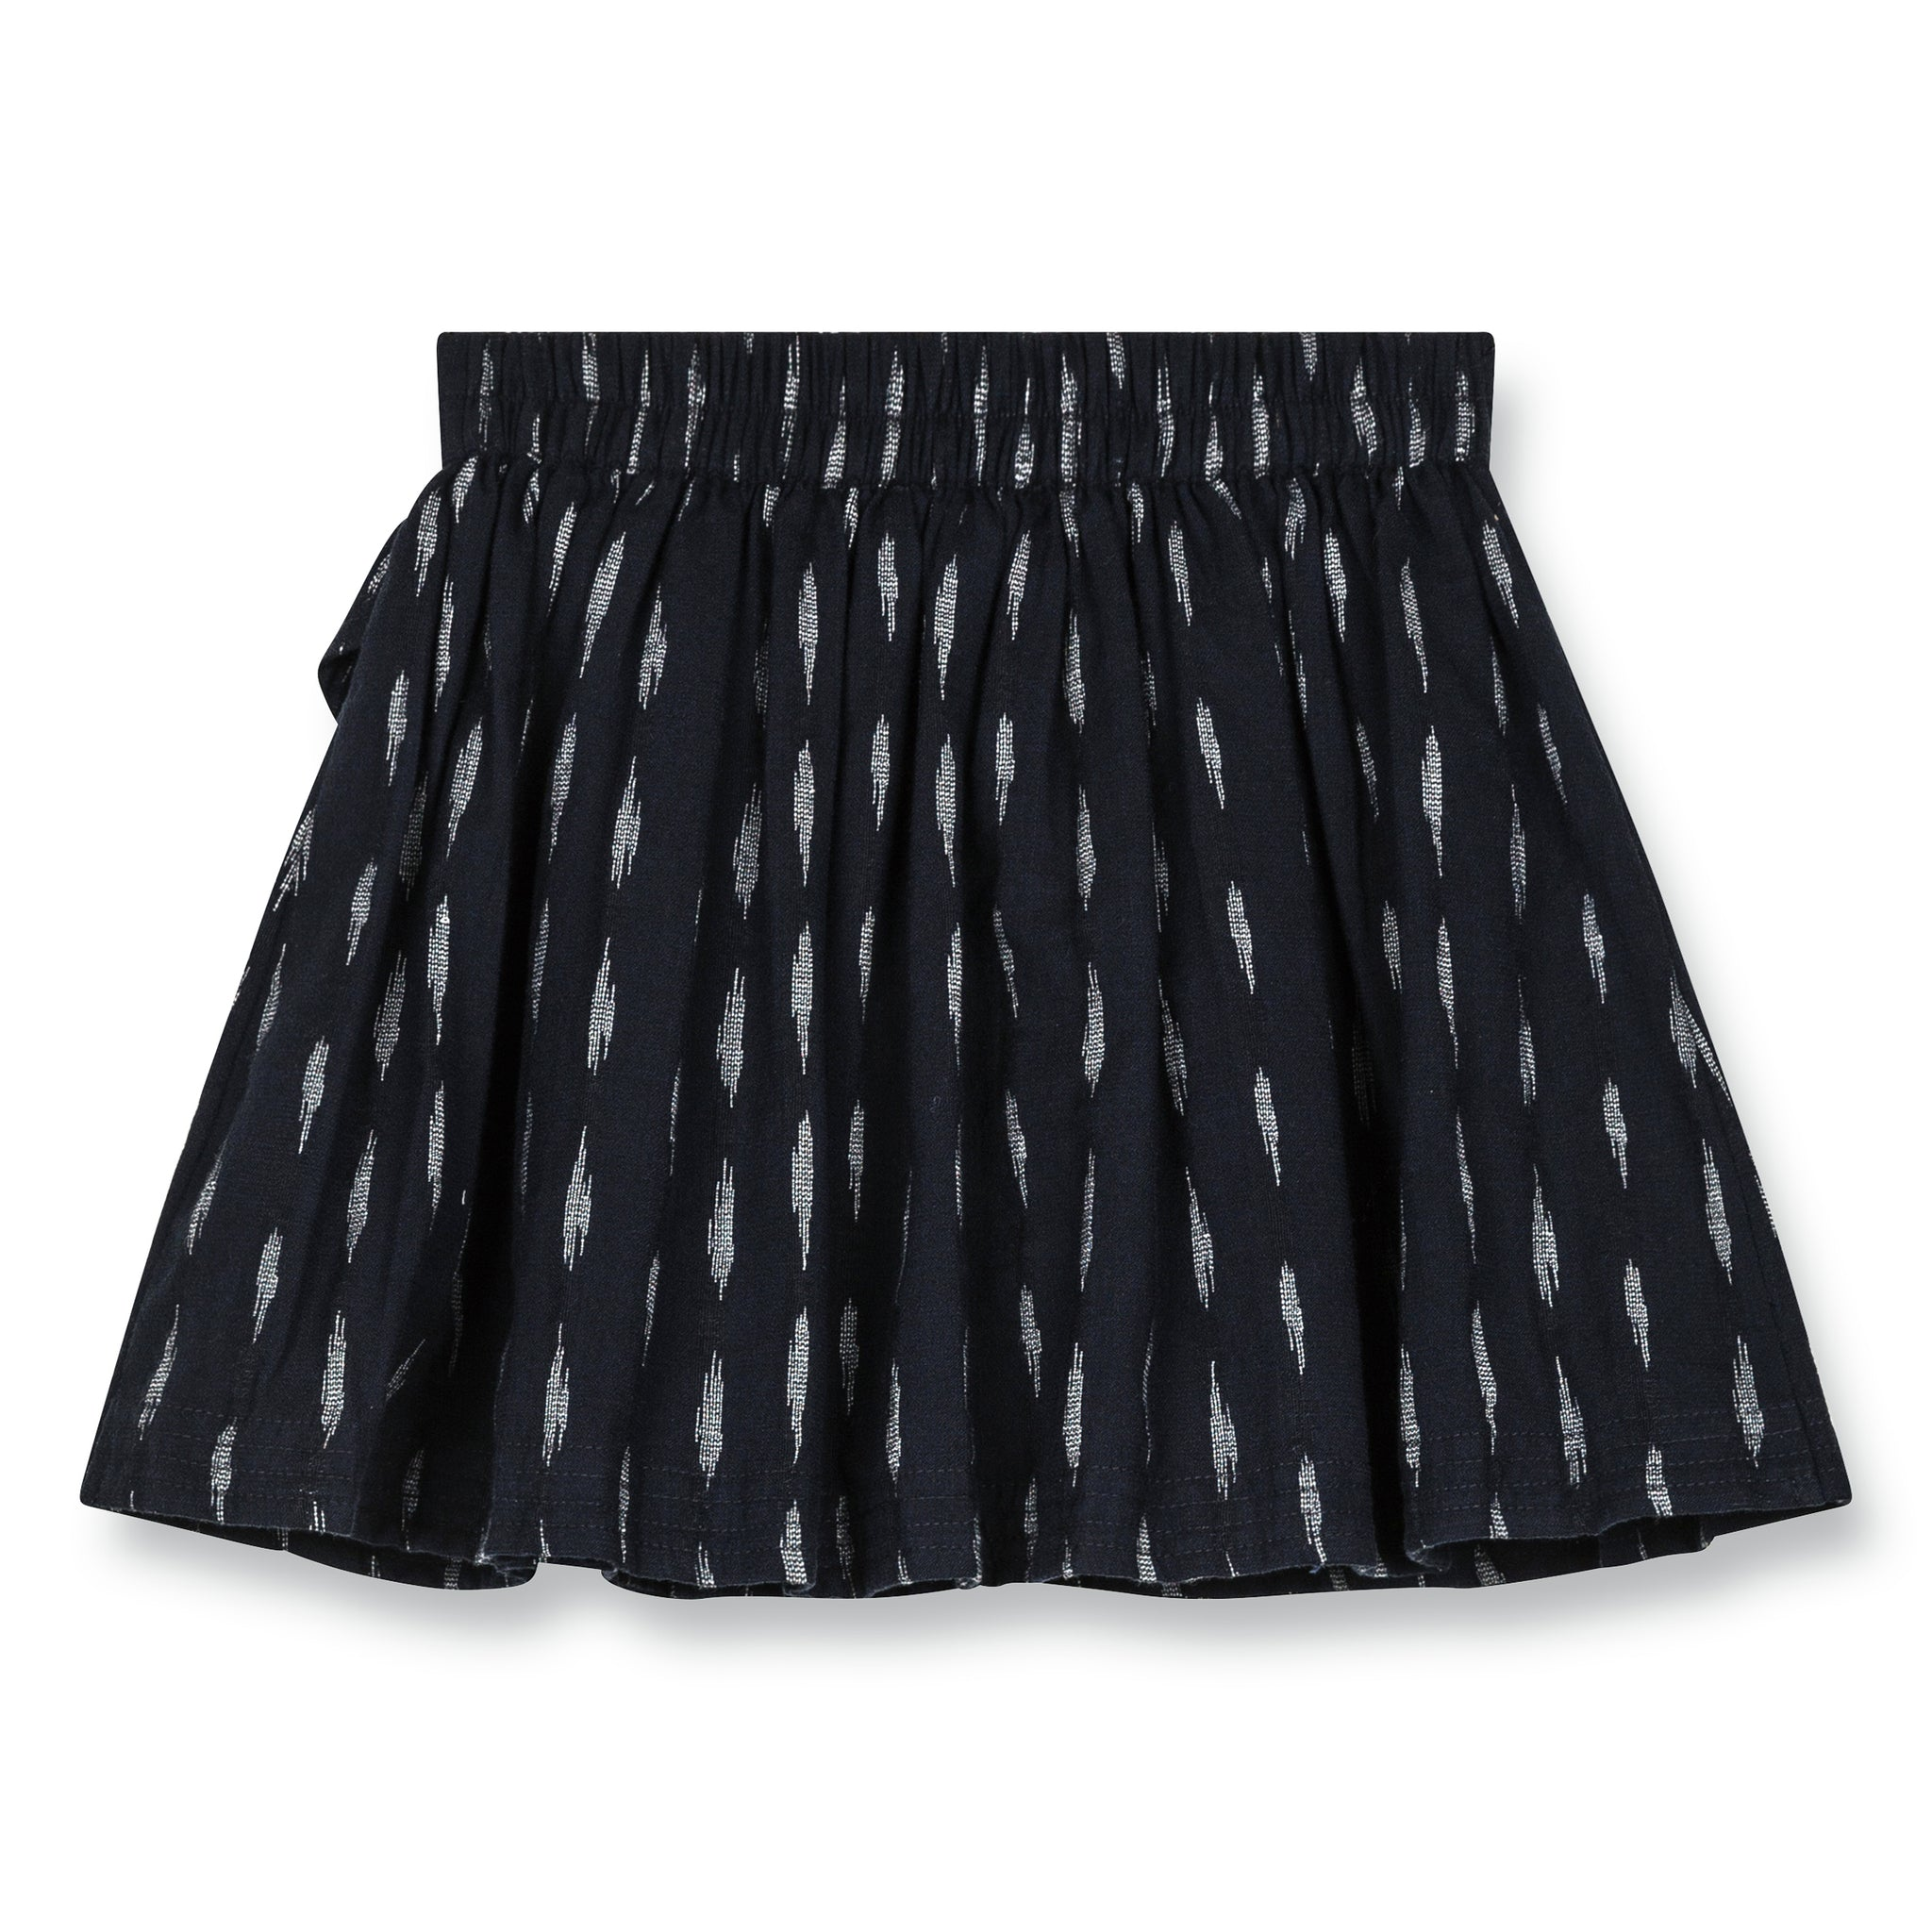 MAYBELLE Indigo Jacquard - Short Skirt 2